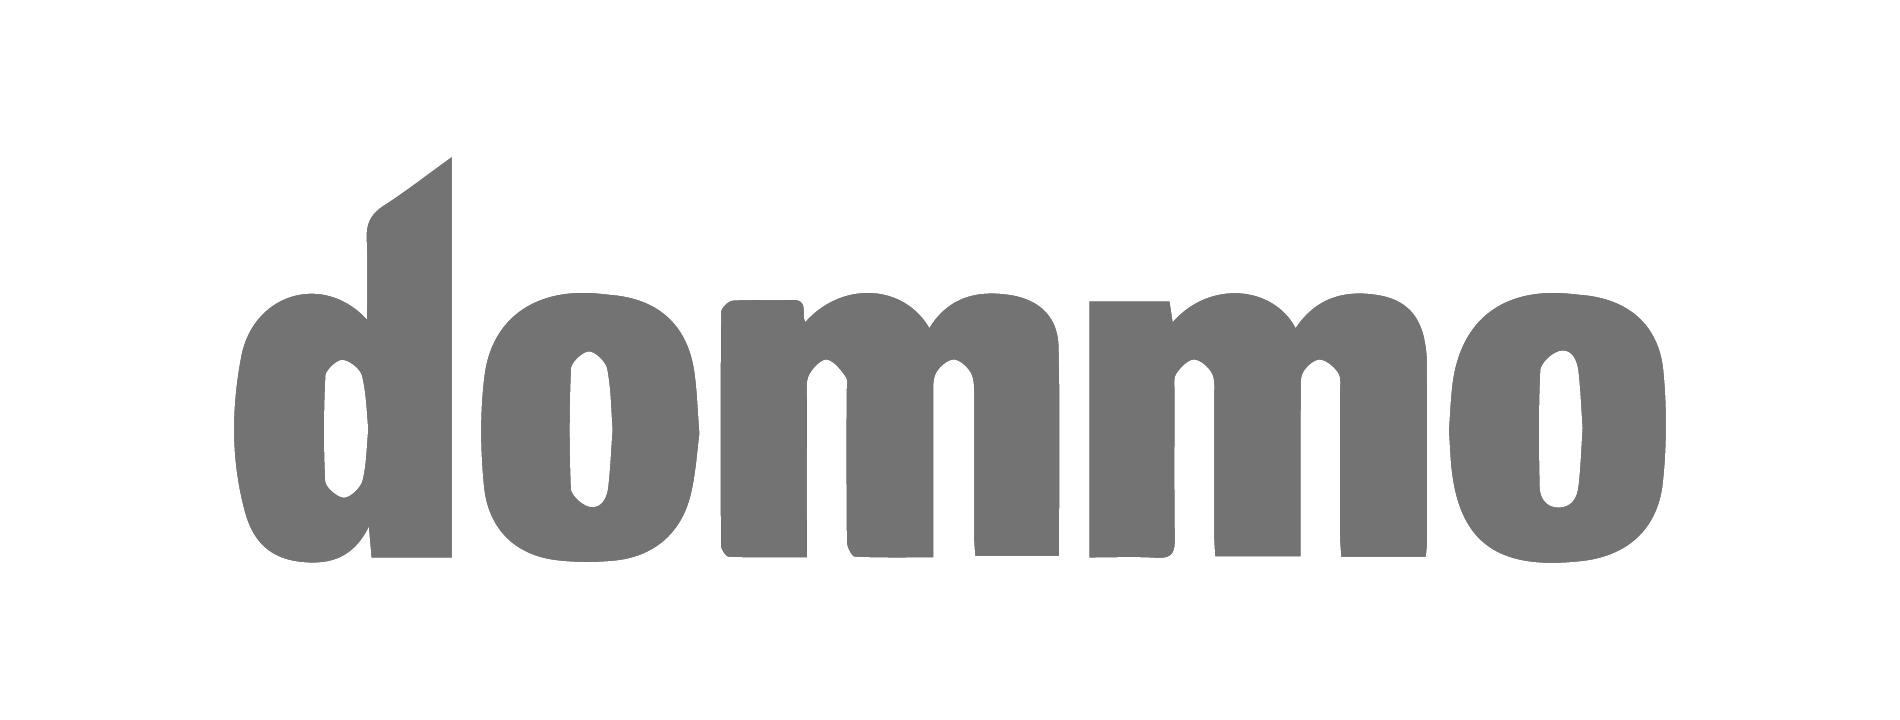 Dommo@2x.png